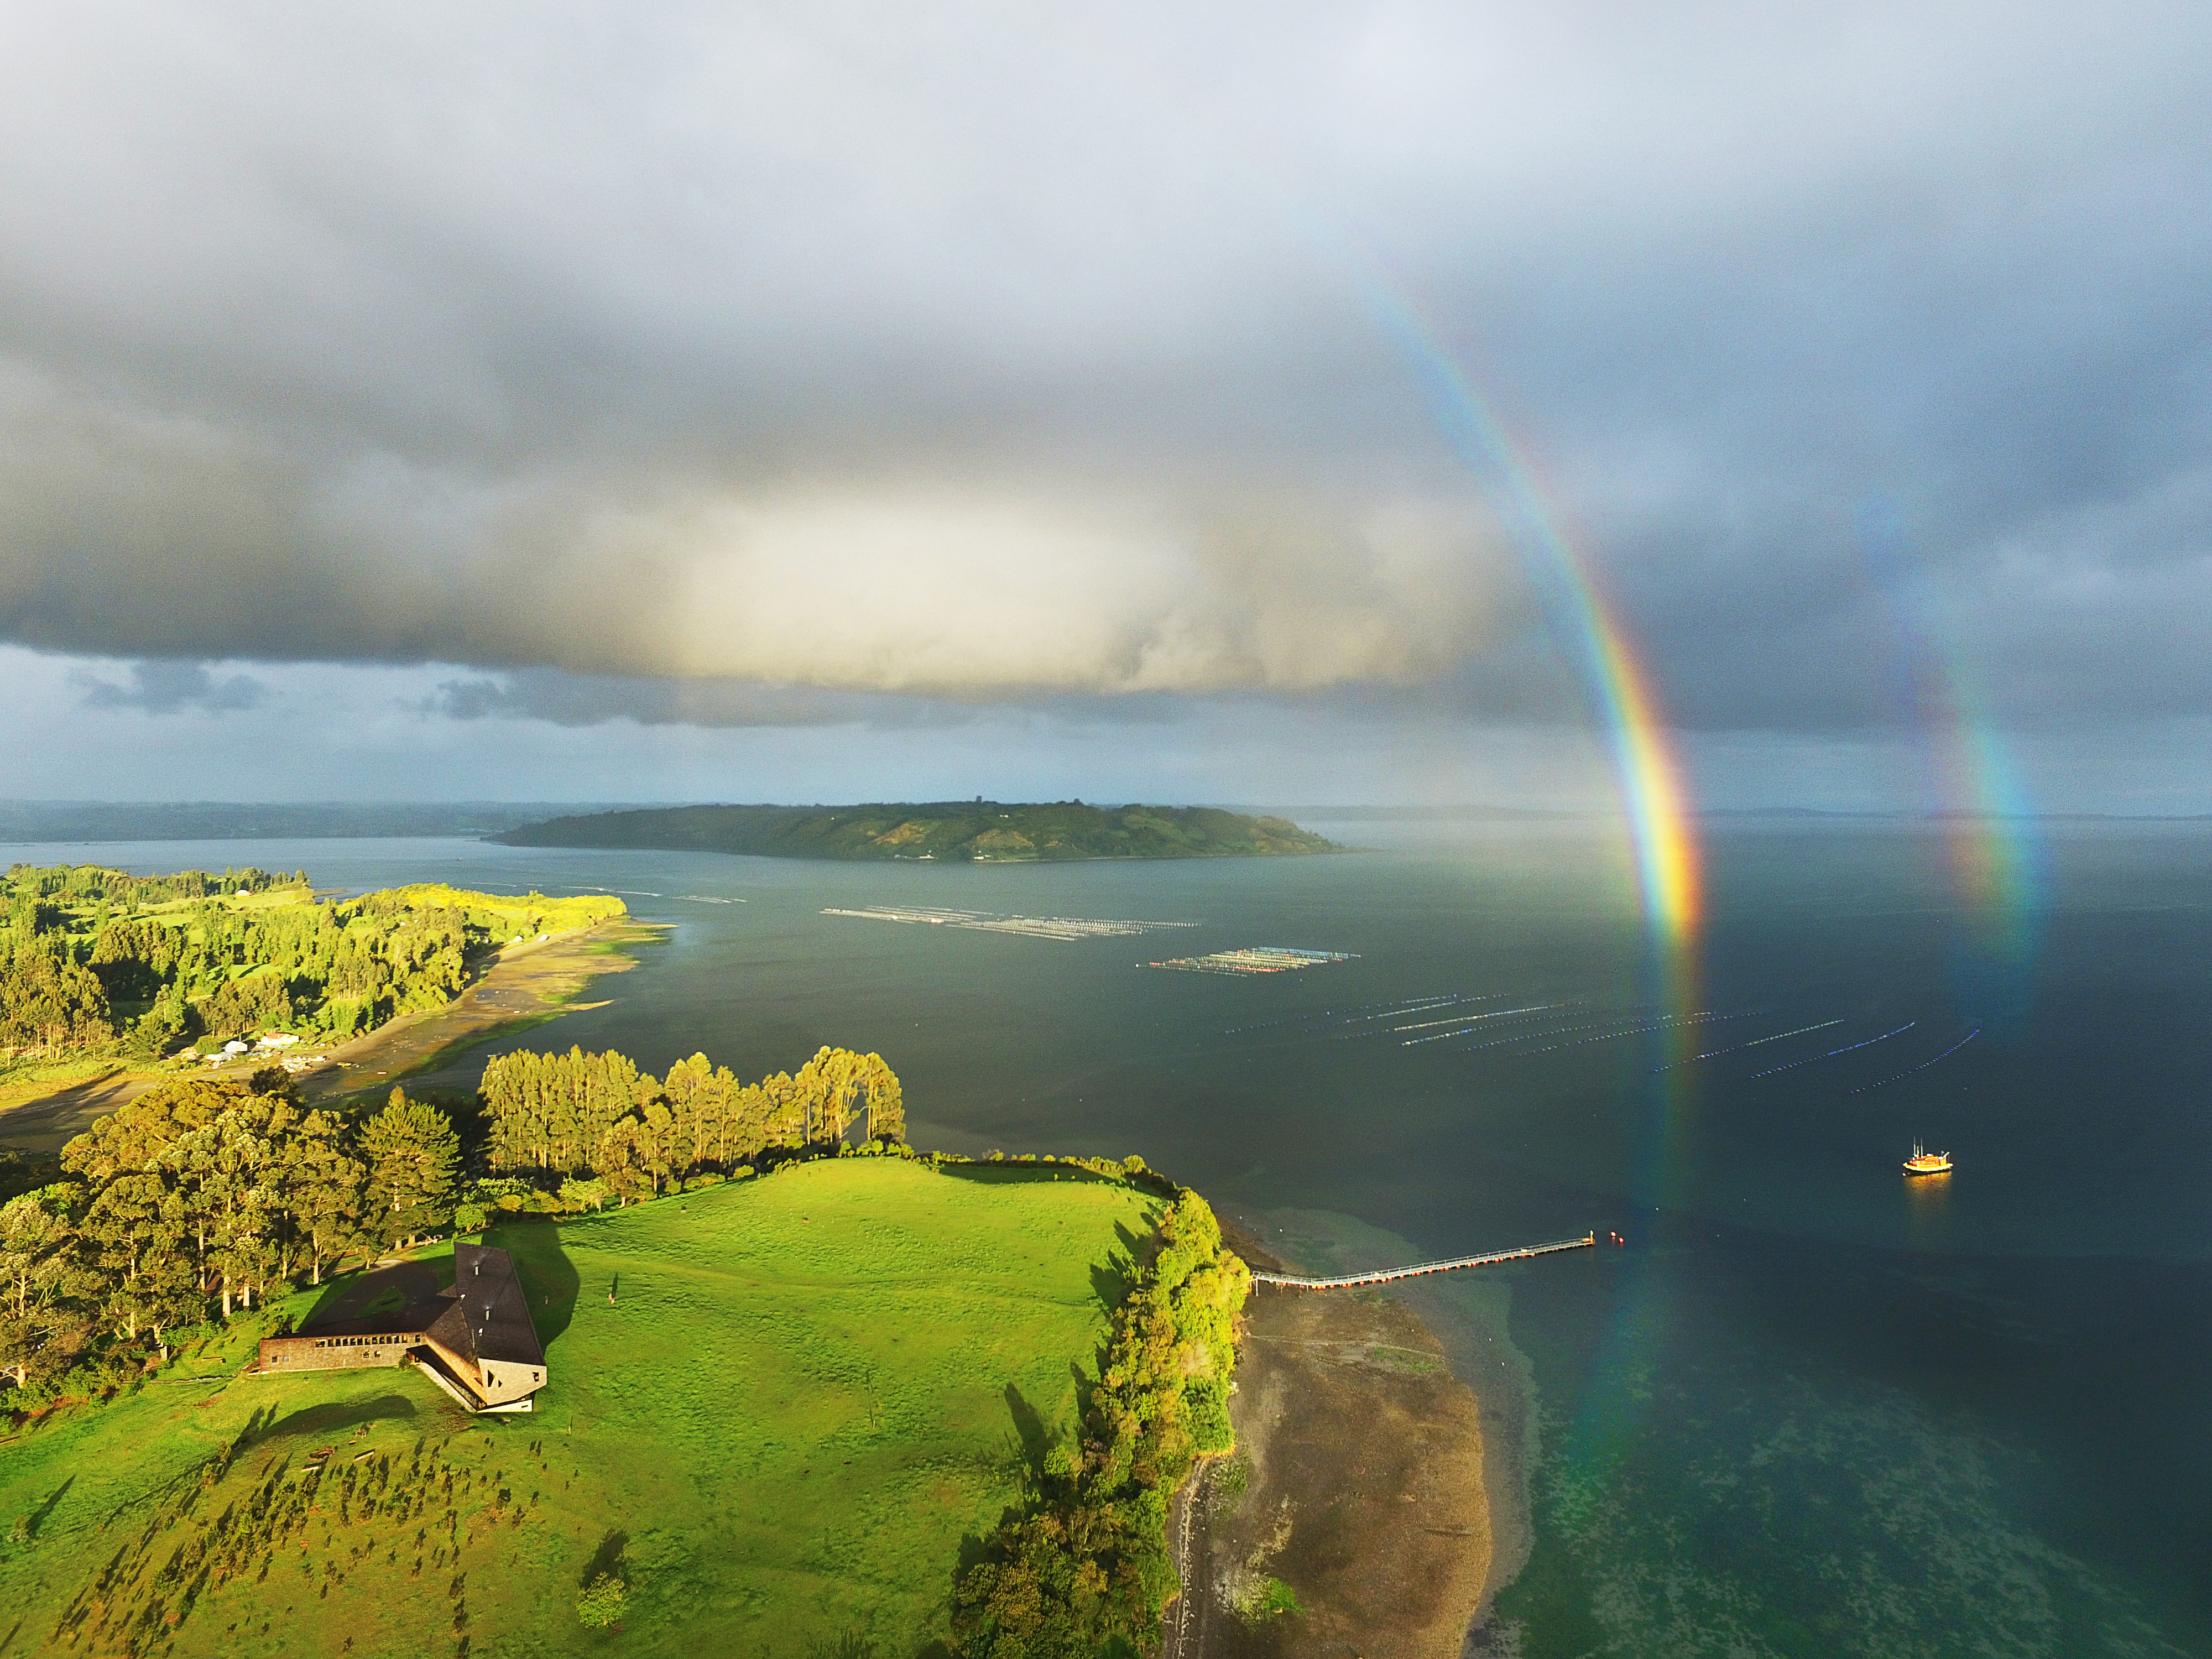 CHILE, CHILOE, TRAVEL CHILE, SOUTH AMERICA, TIERRA HOTELS, TIERRA CHILOE, RAINBOW